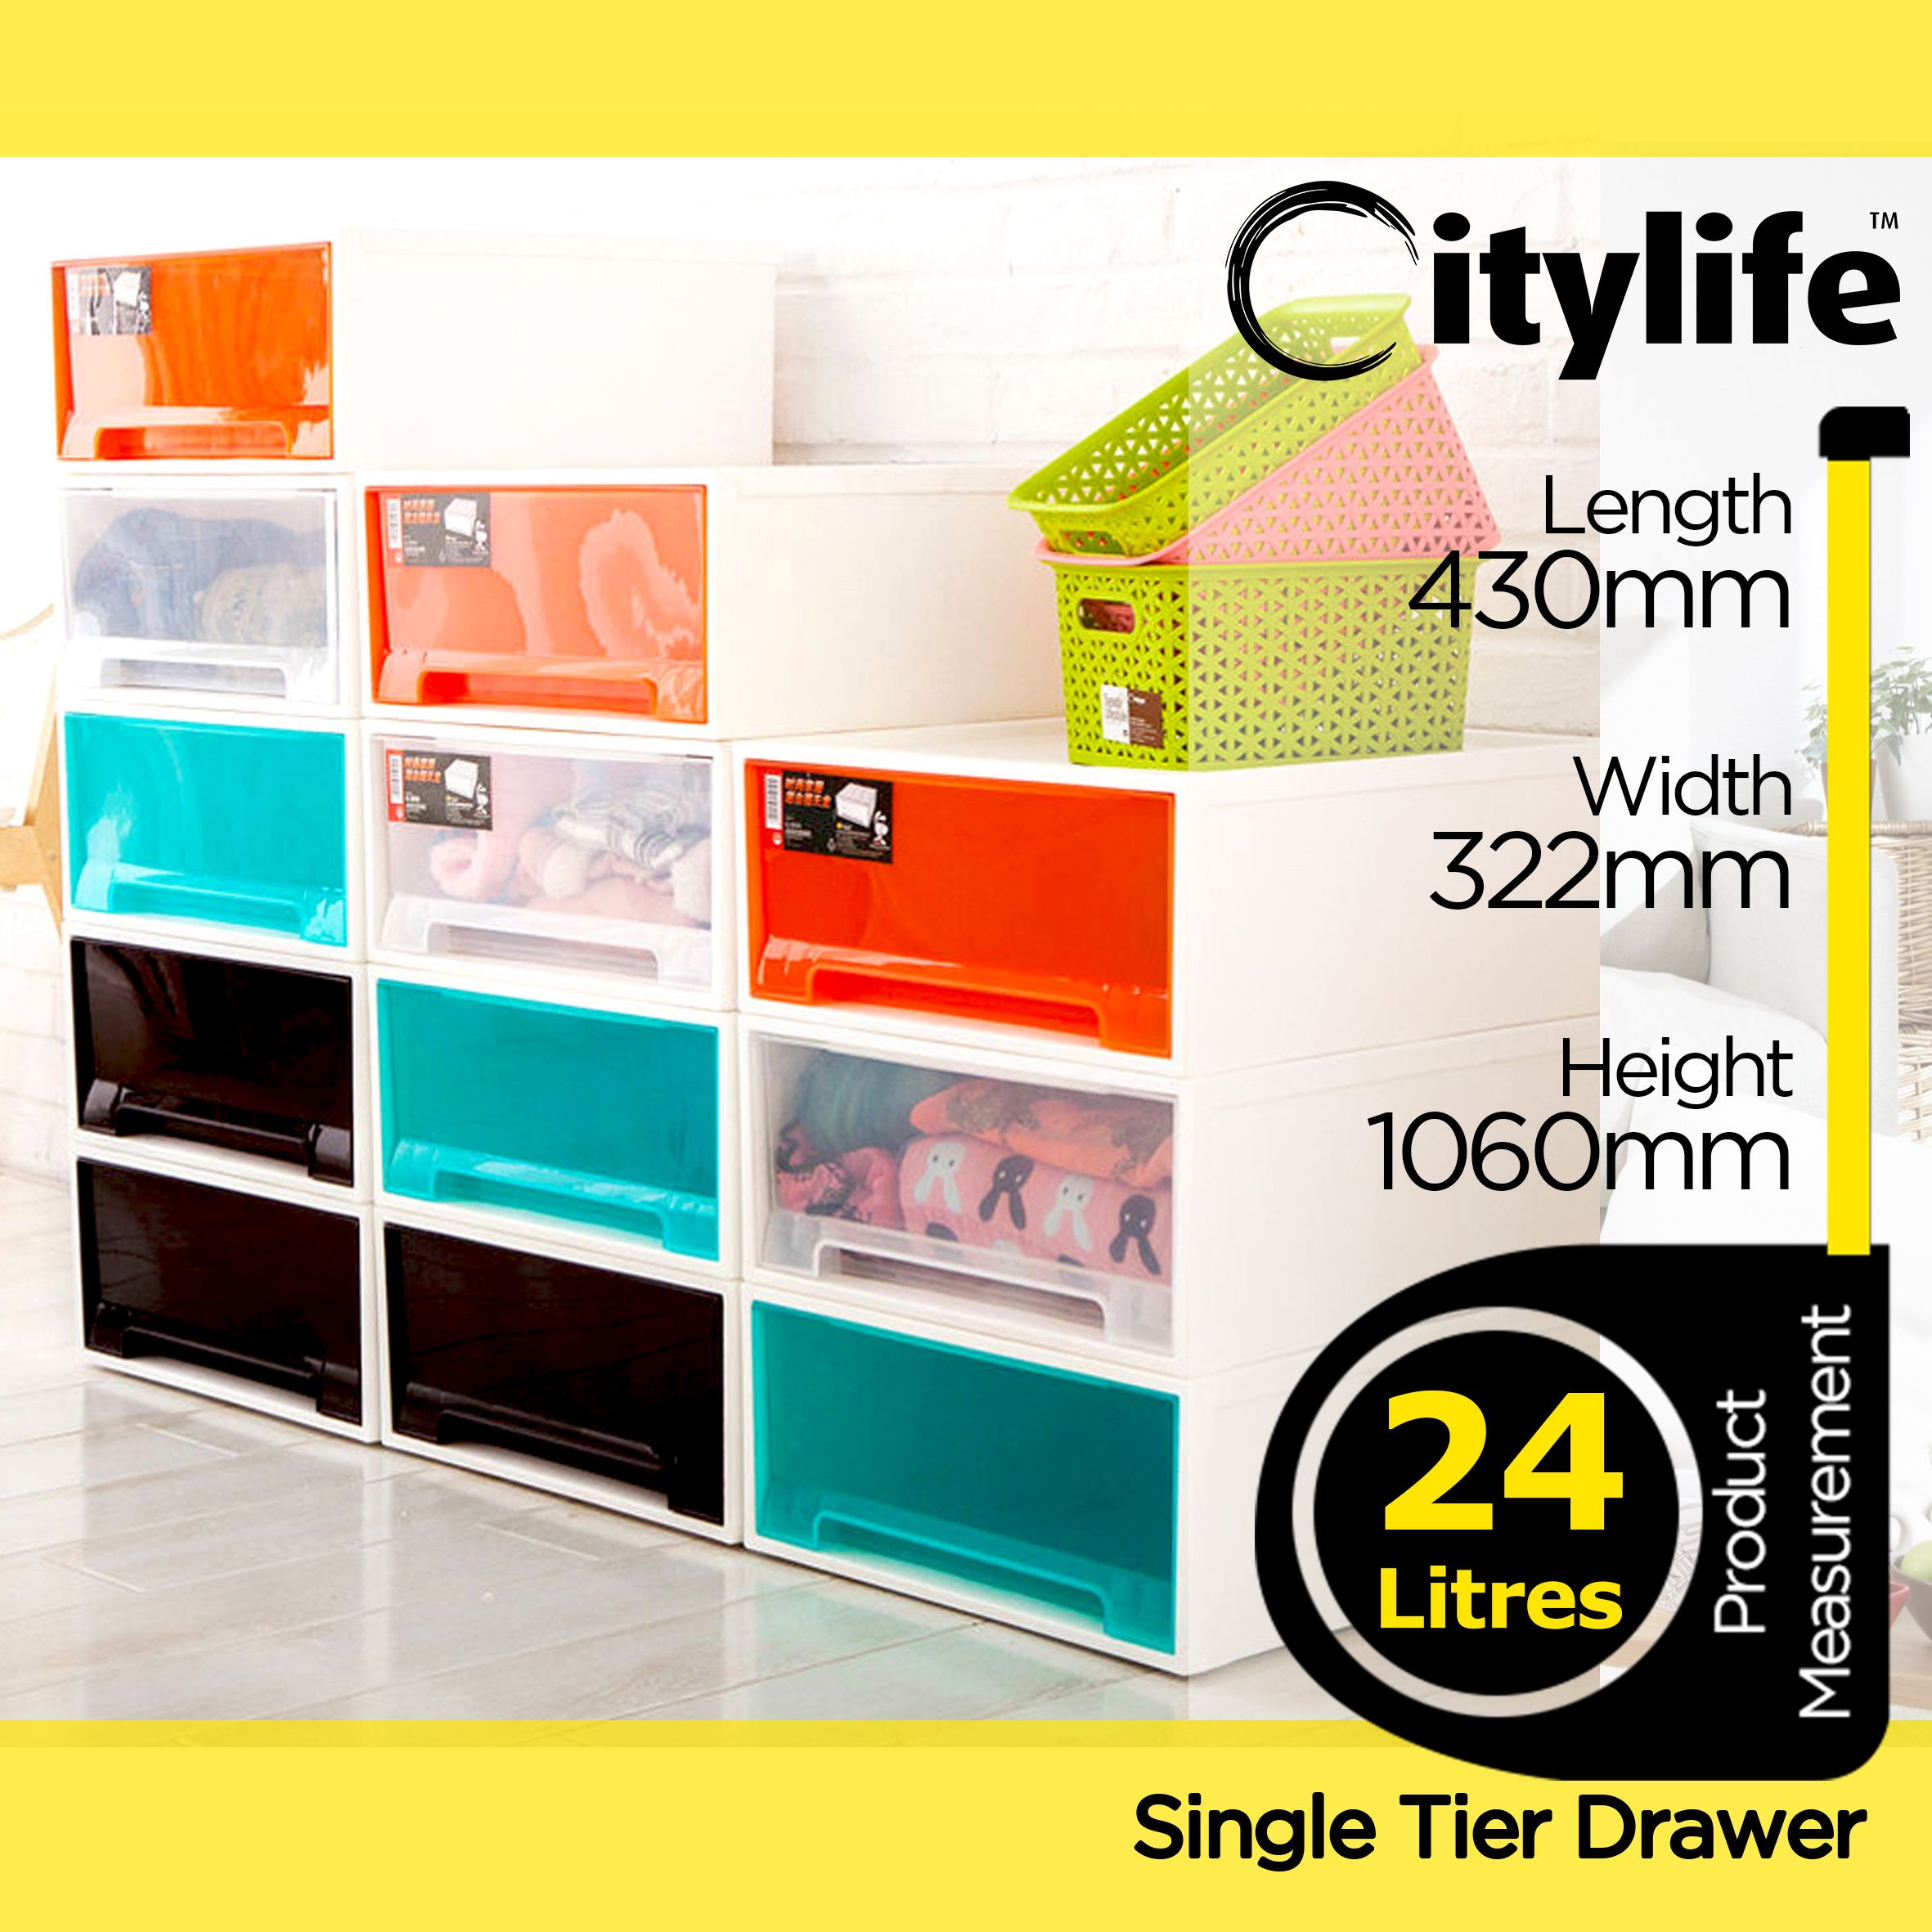 Citylife Online Exclusive 24l Signature Single Tier Drawer Bundle Of 4 Free Delivery